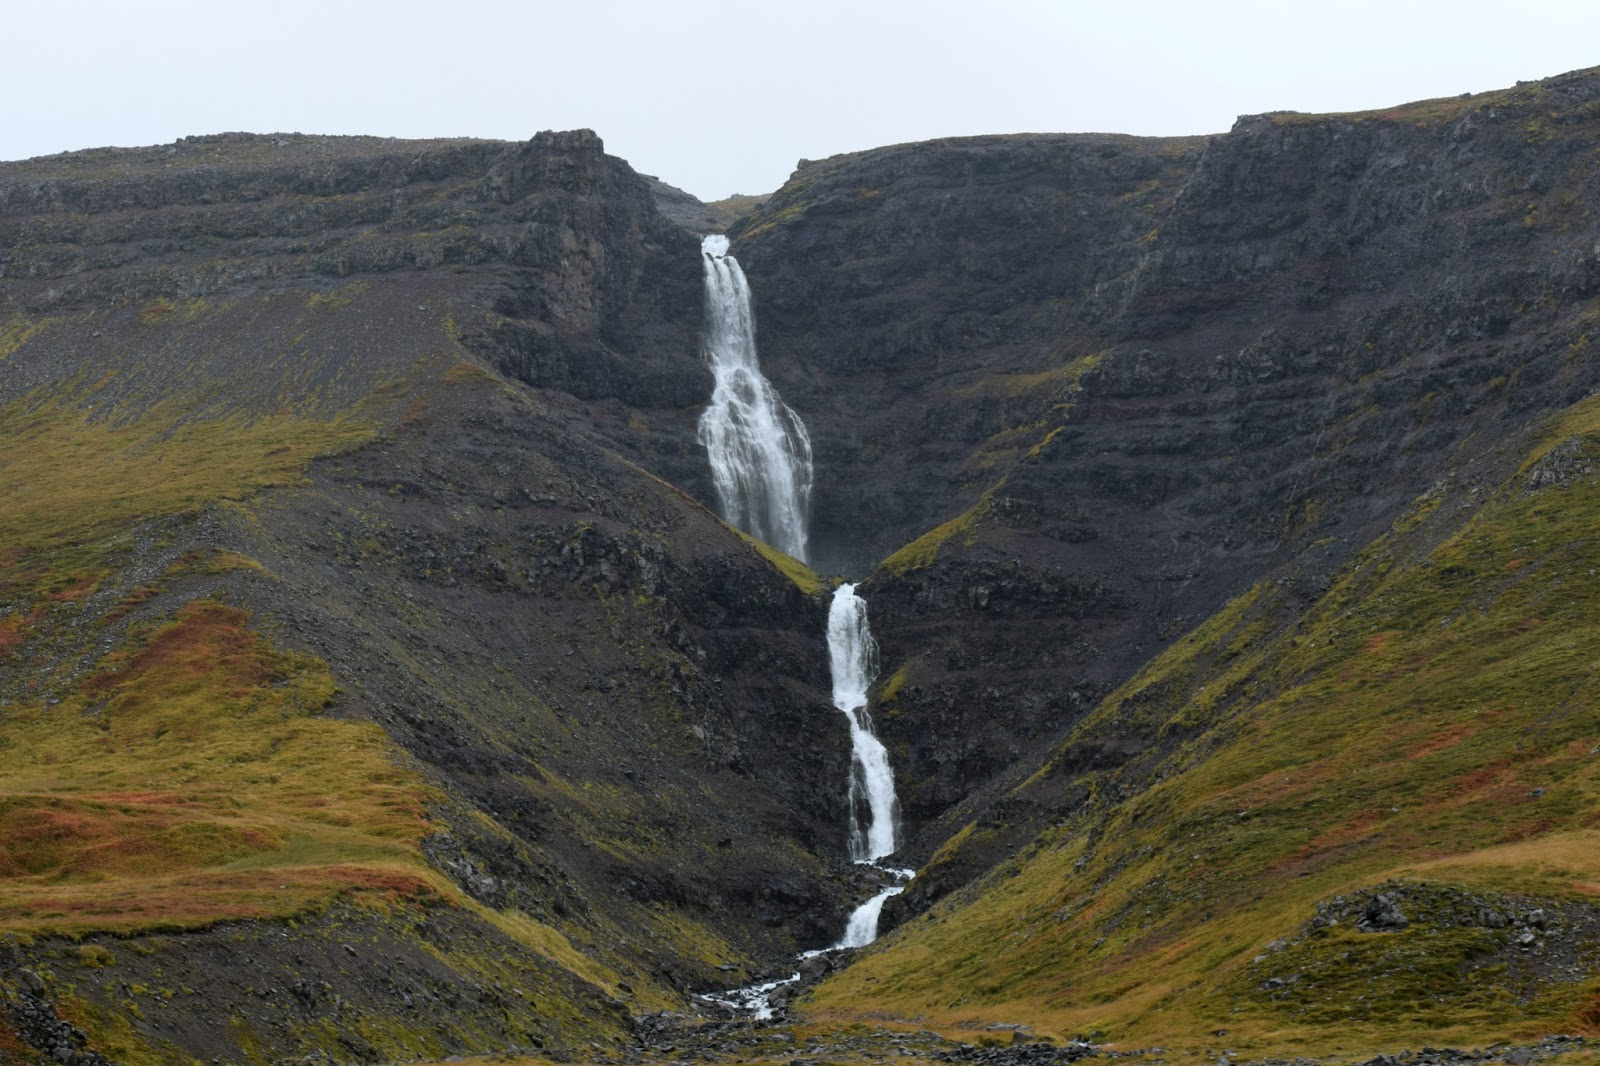 ^ another casual roadside waterfall